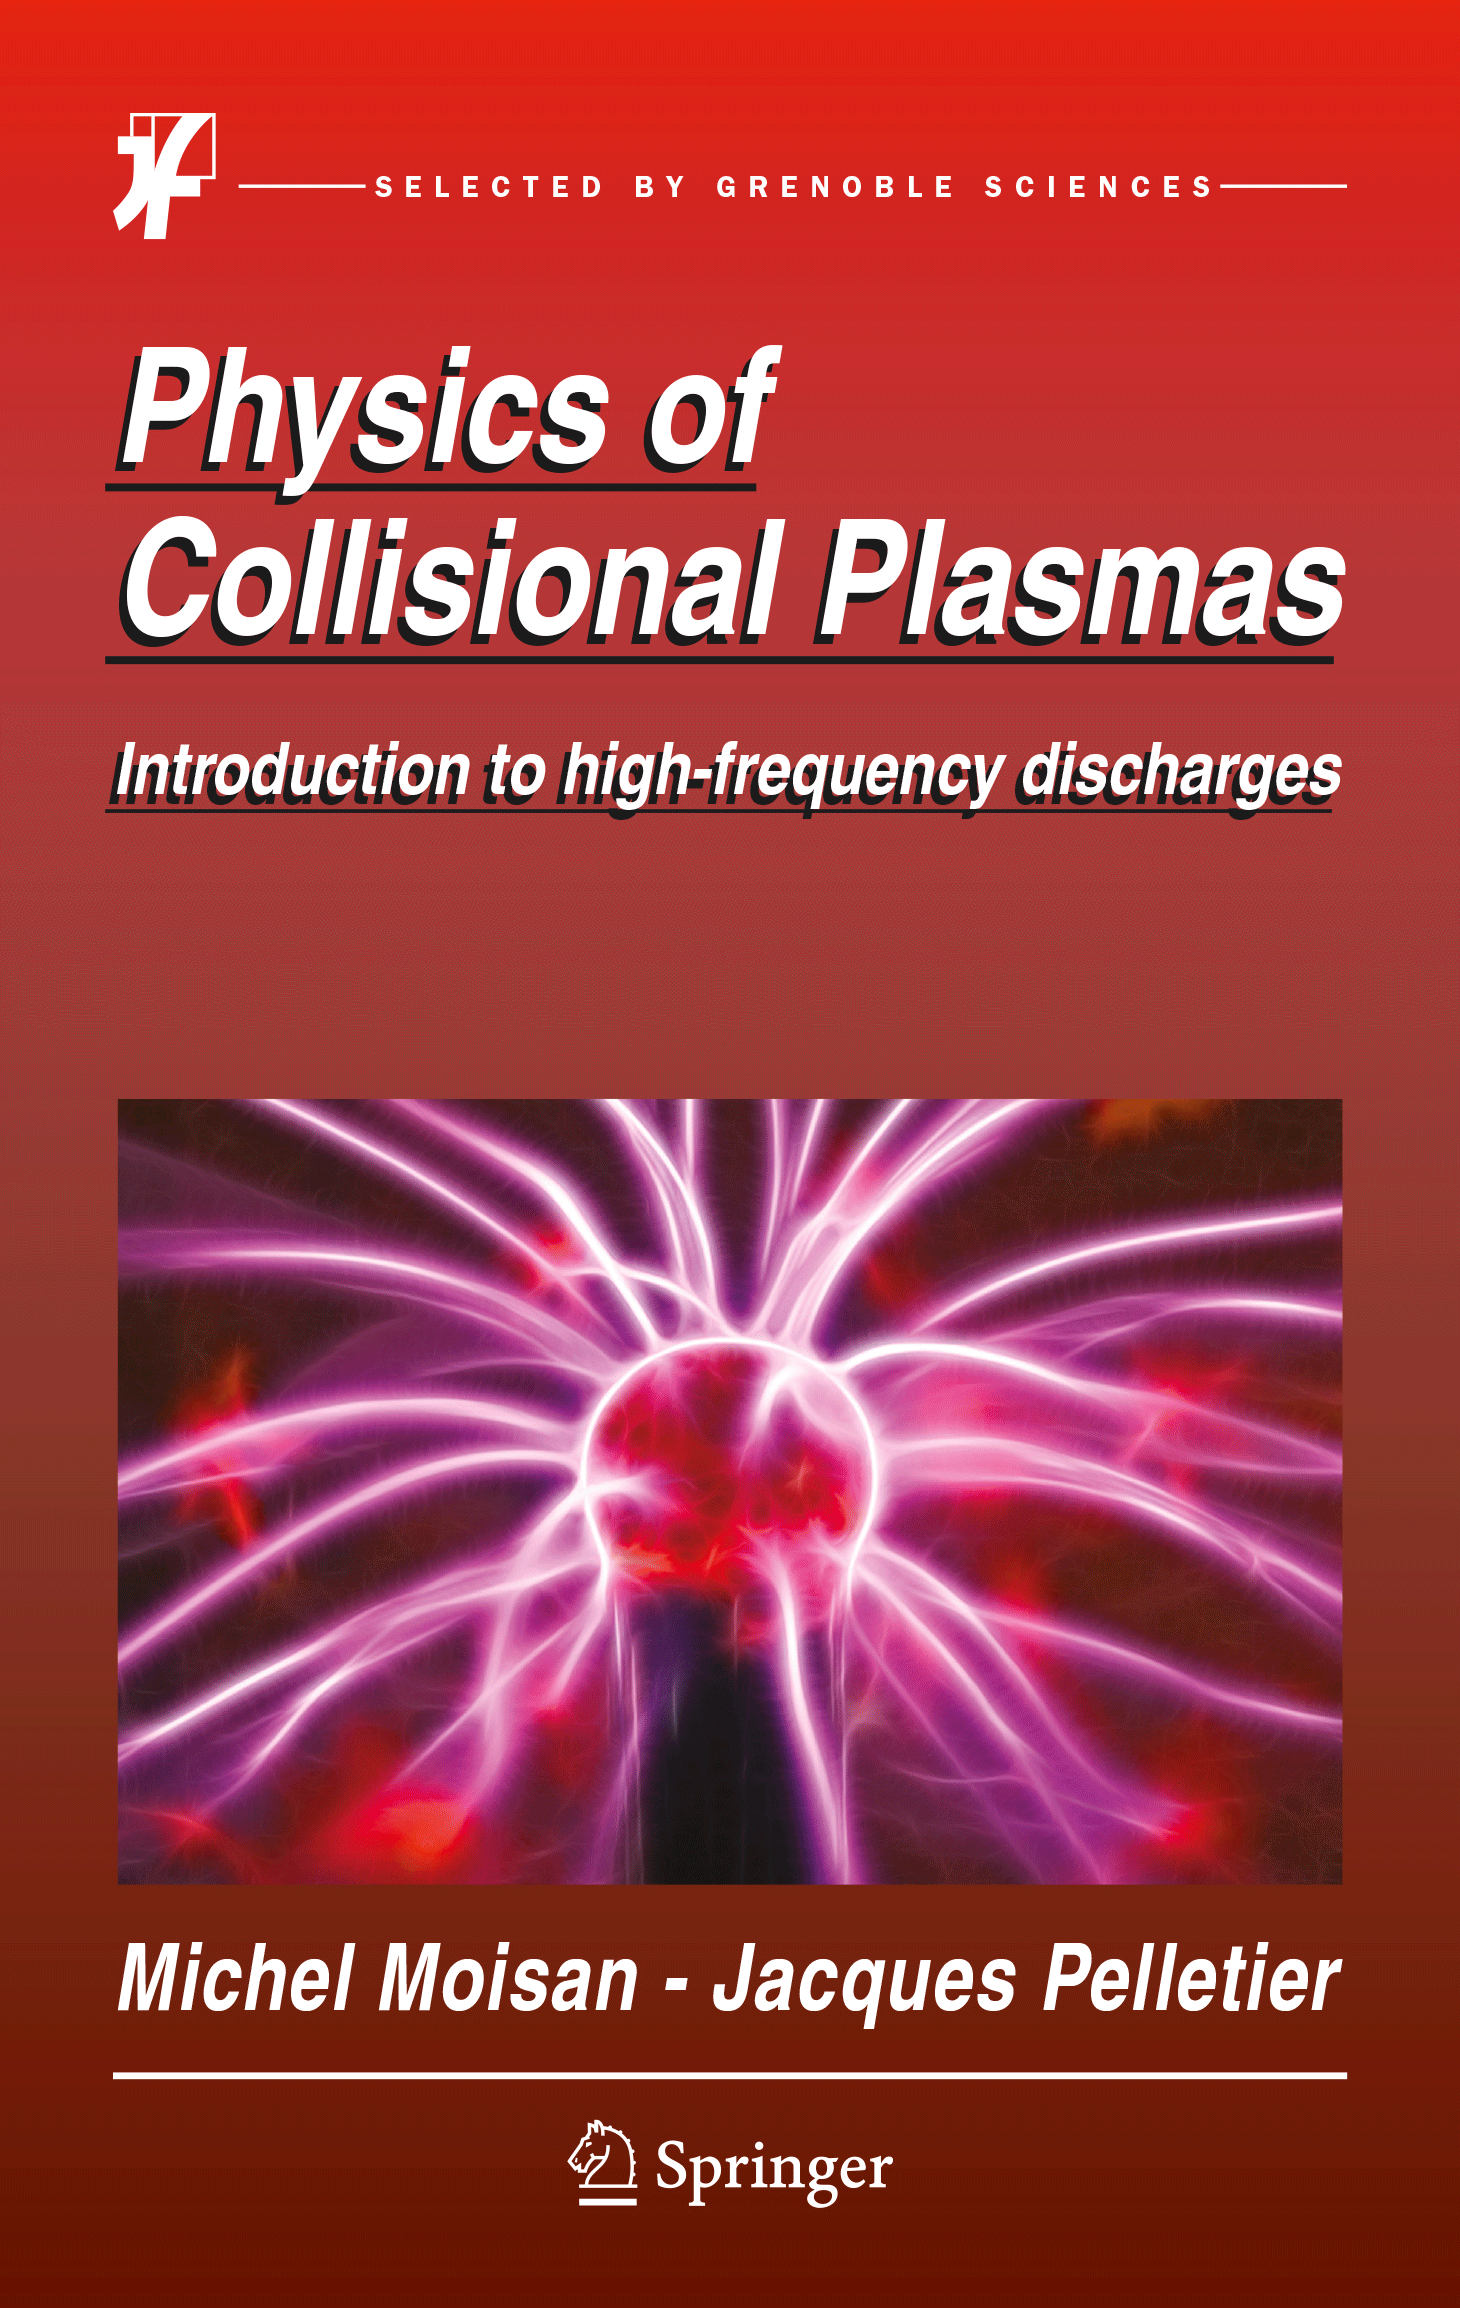 Physics of Collisional Plasmas